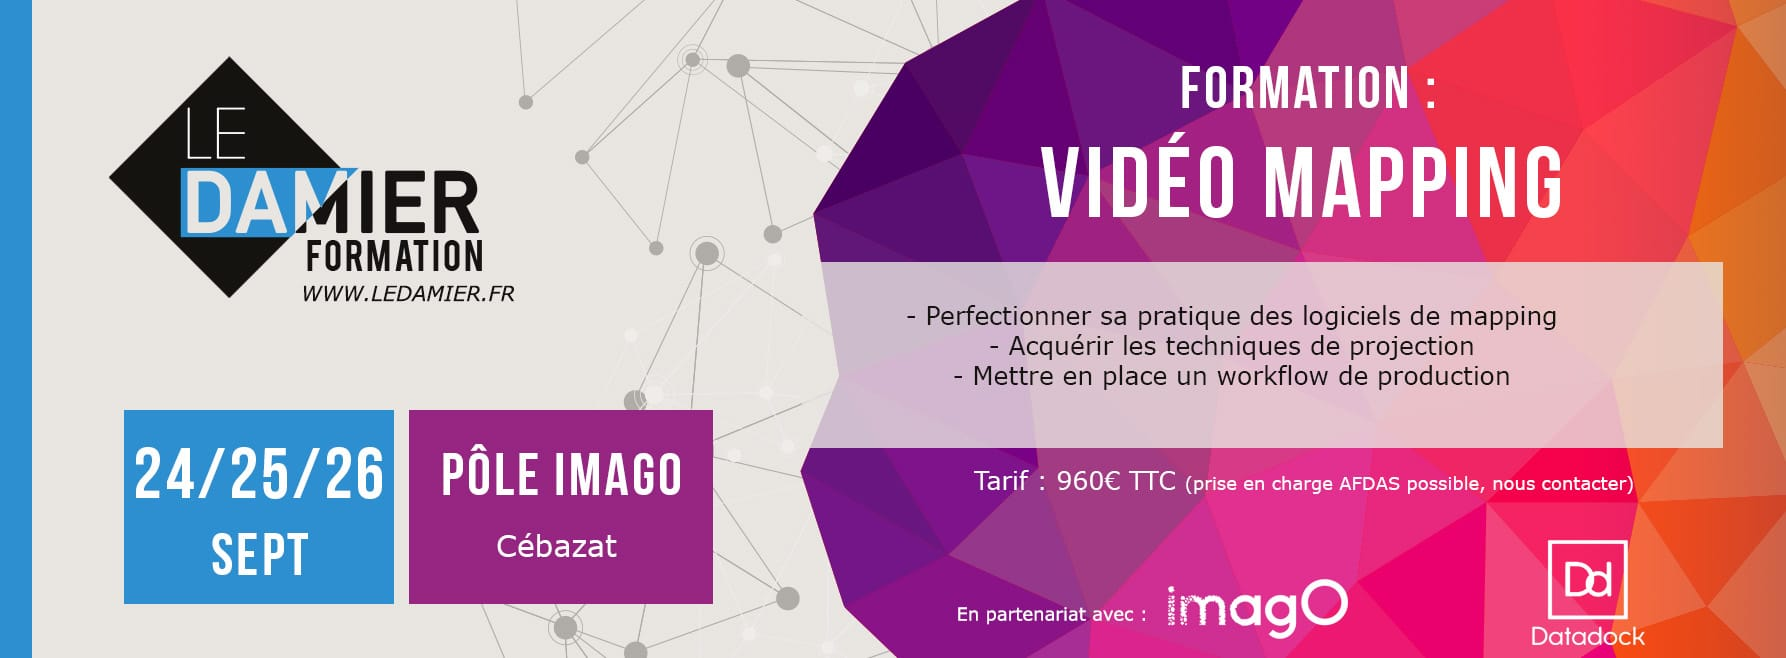 Formation vidéo mapping